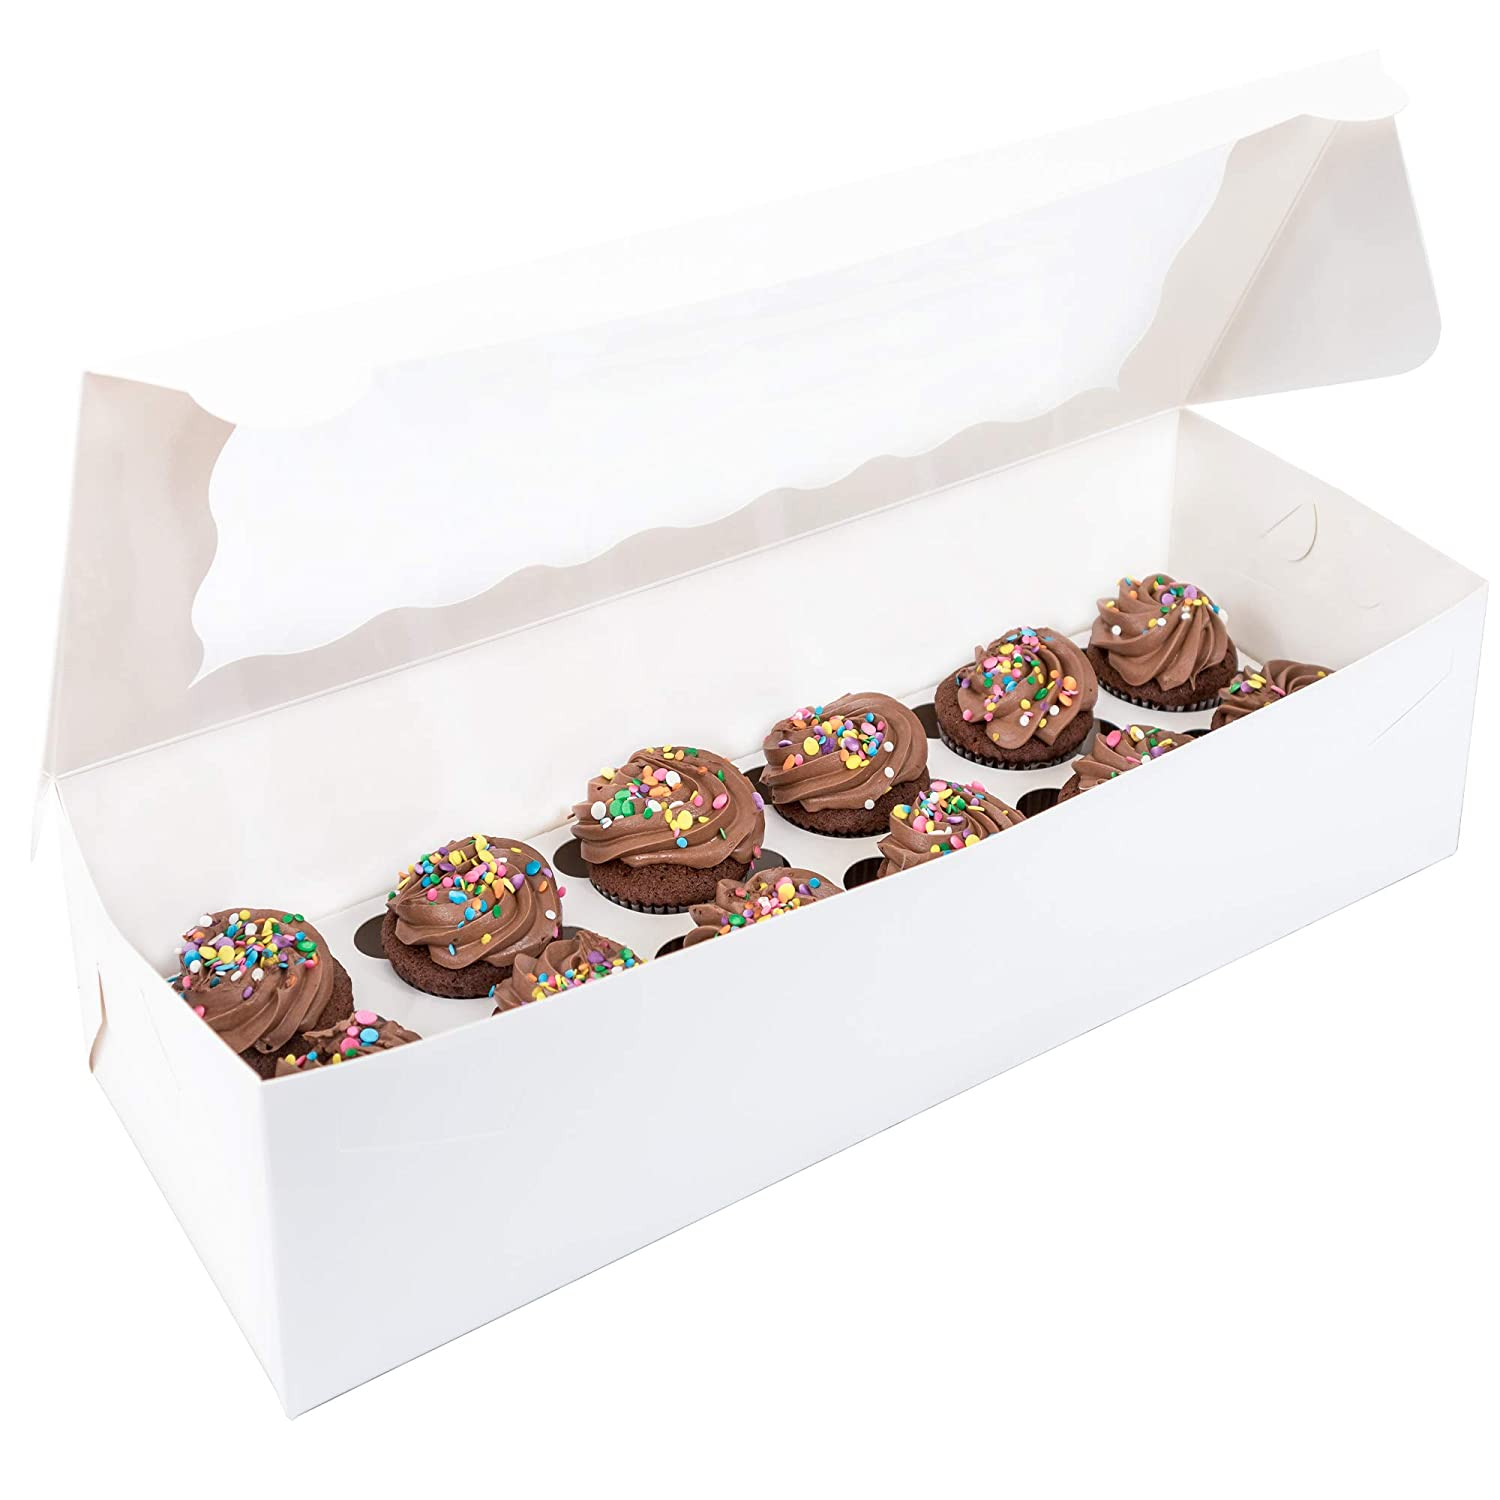 Doris & Birk Cupcake Boxes with Insert Holders and Plastic Window - Disposable Greaseproof Box Carrier Containers or Storage for Cupcakes, Muffins and Other Desserts